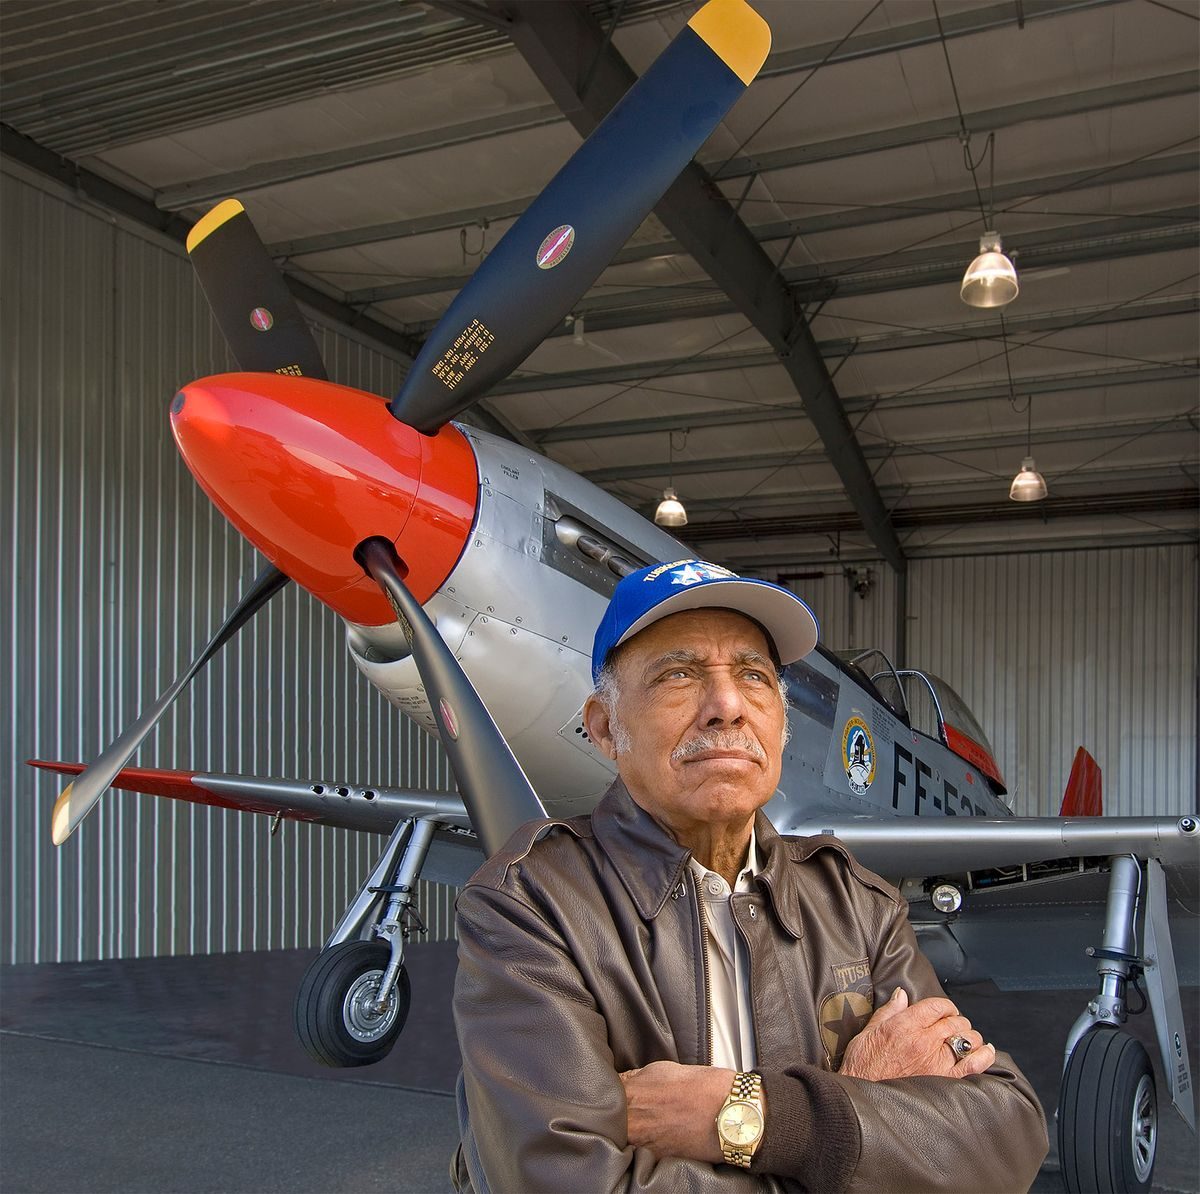 US Army Air Corps Tuskegee Airman